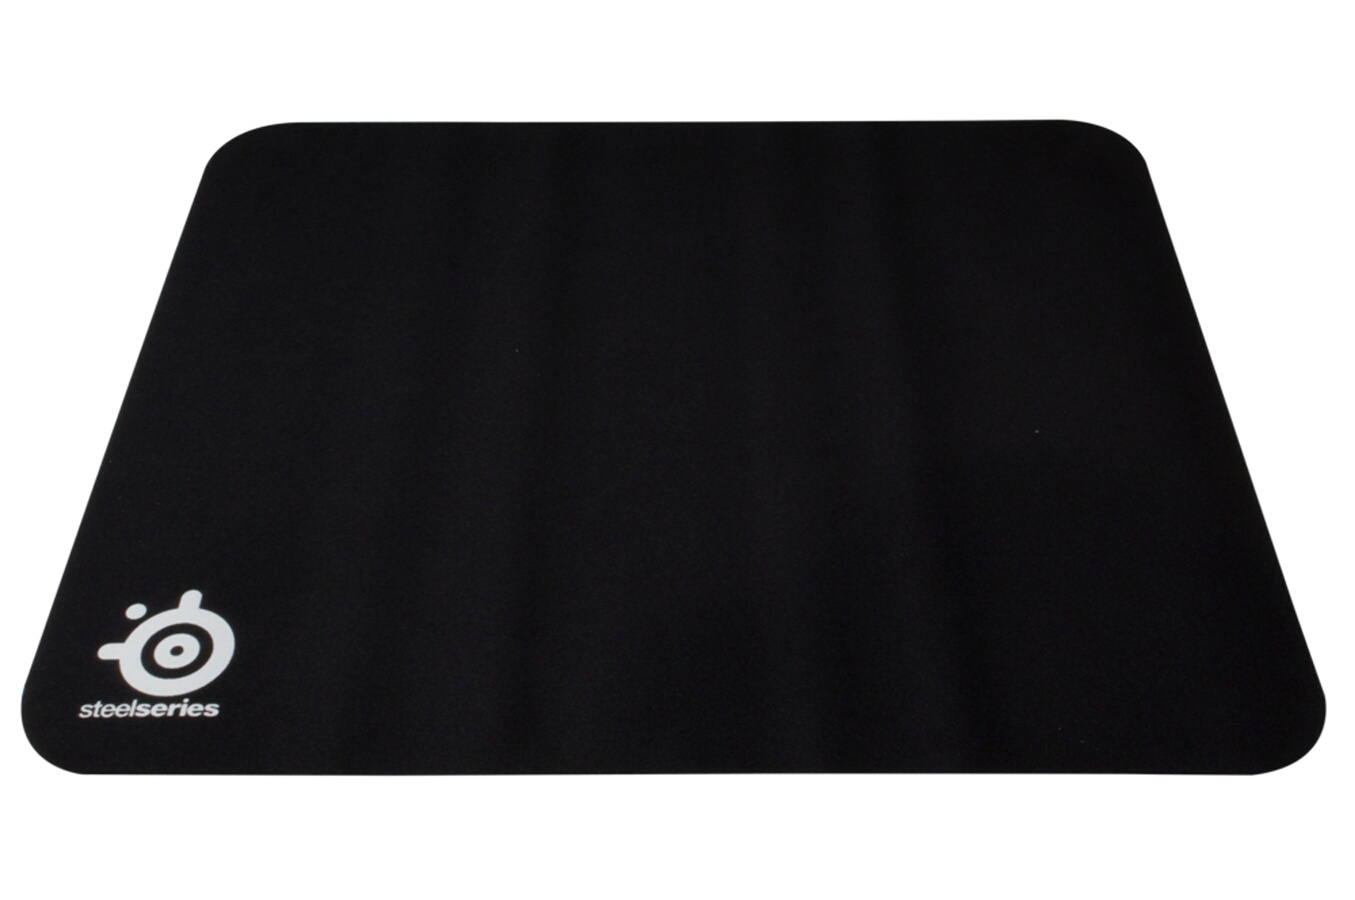 Tapis de souris steelseries tapis steelseries qck steelseriesqck 1155261 darty - Steelseries tapis de souris ...